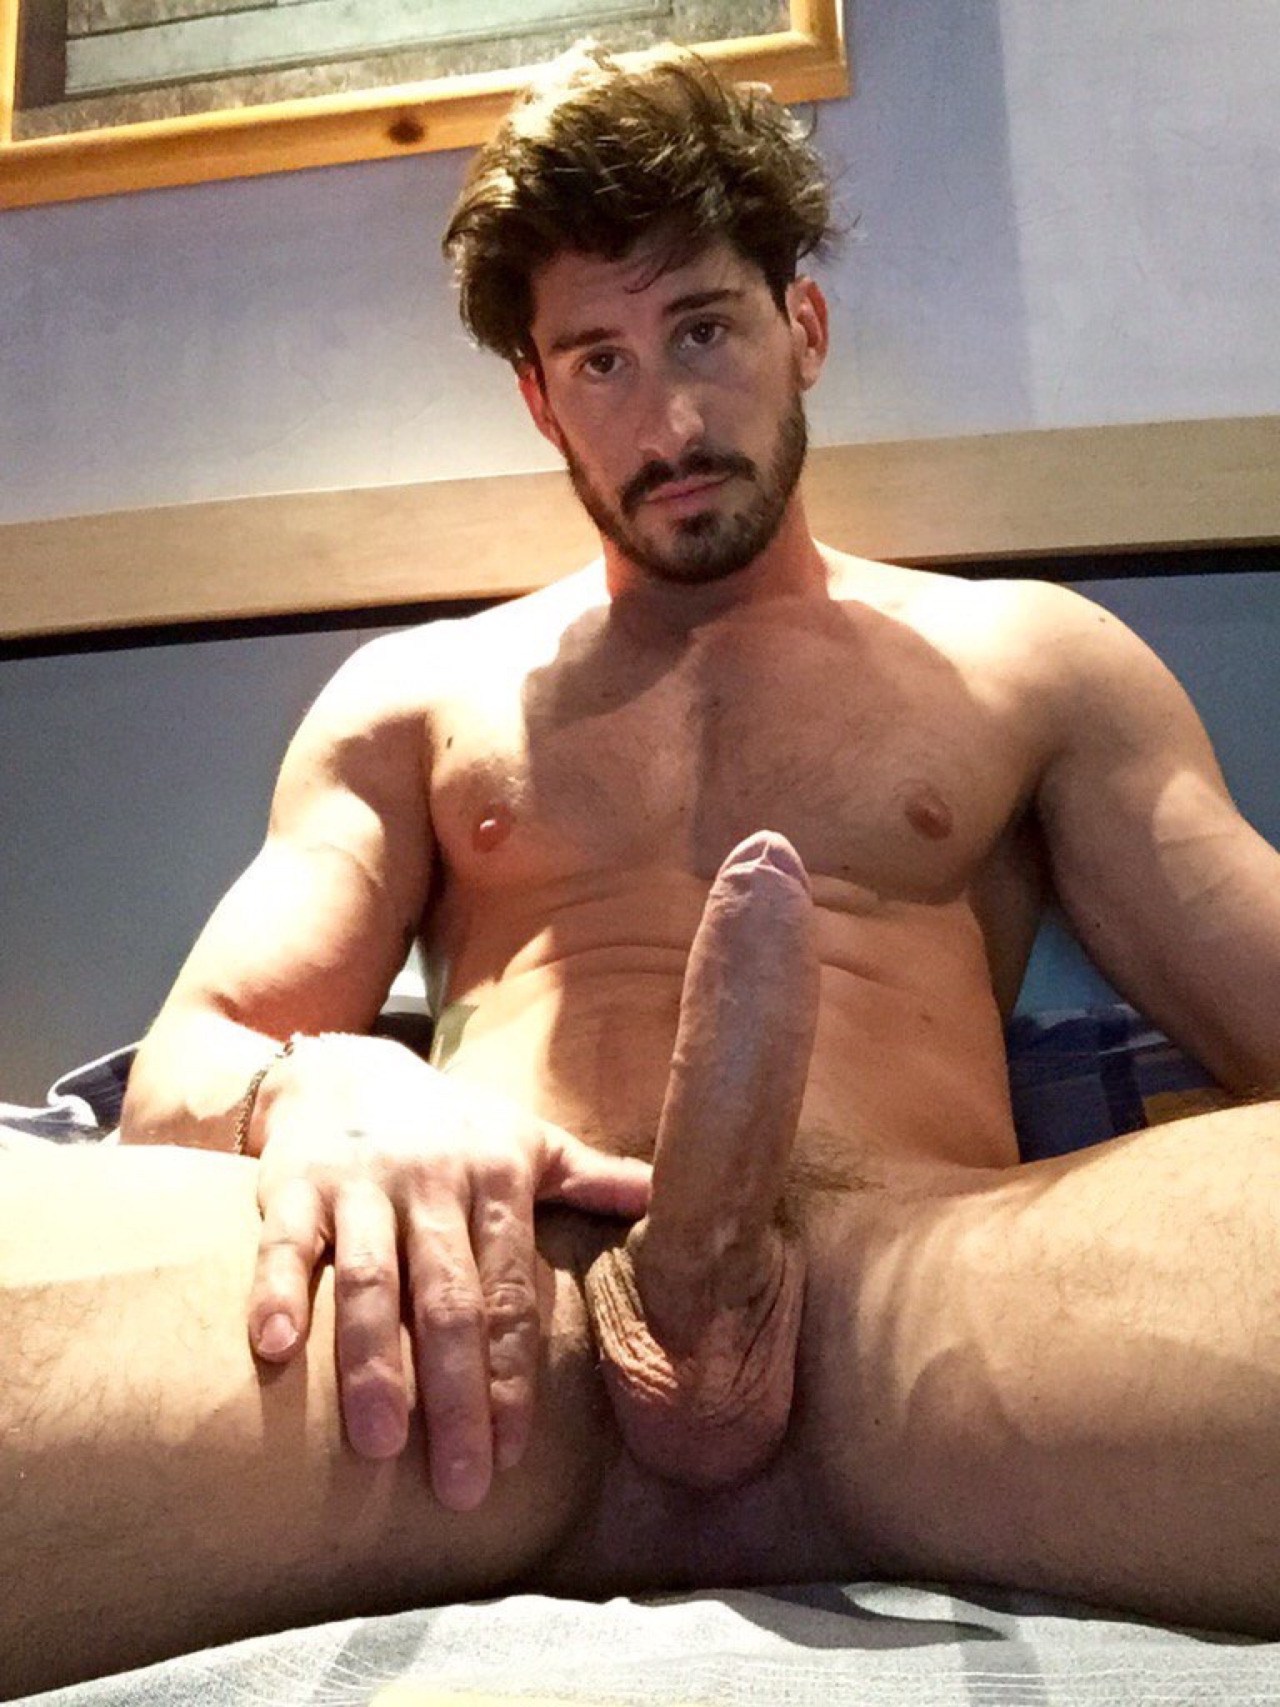 straight-hairy-men-naked-xl-boobs-movies